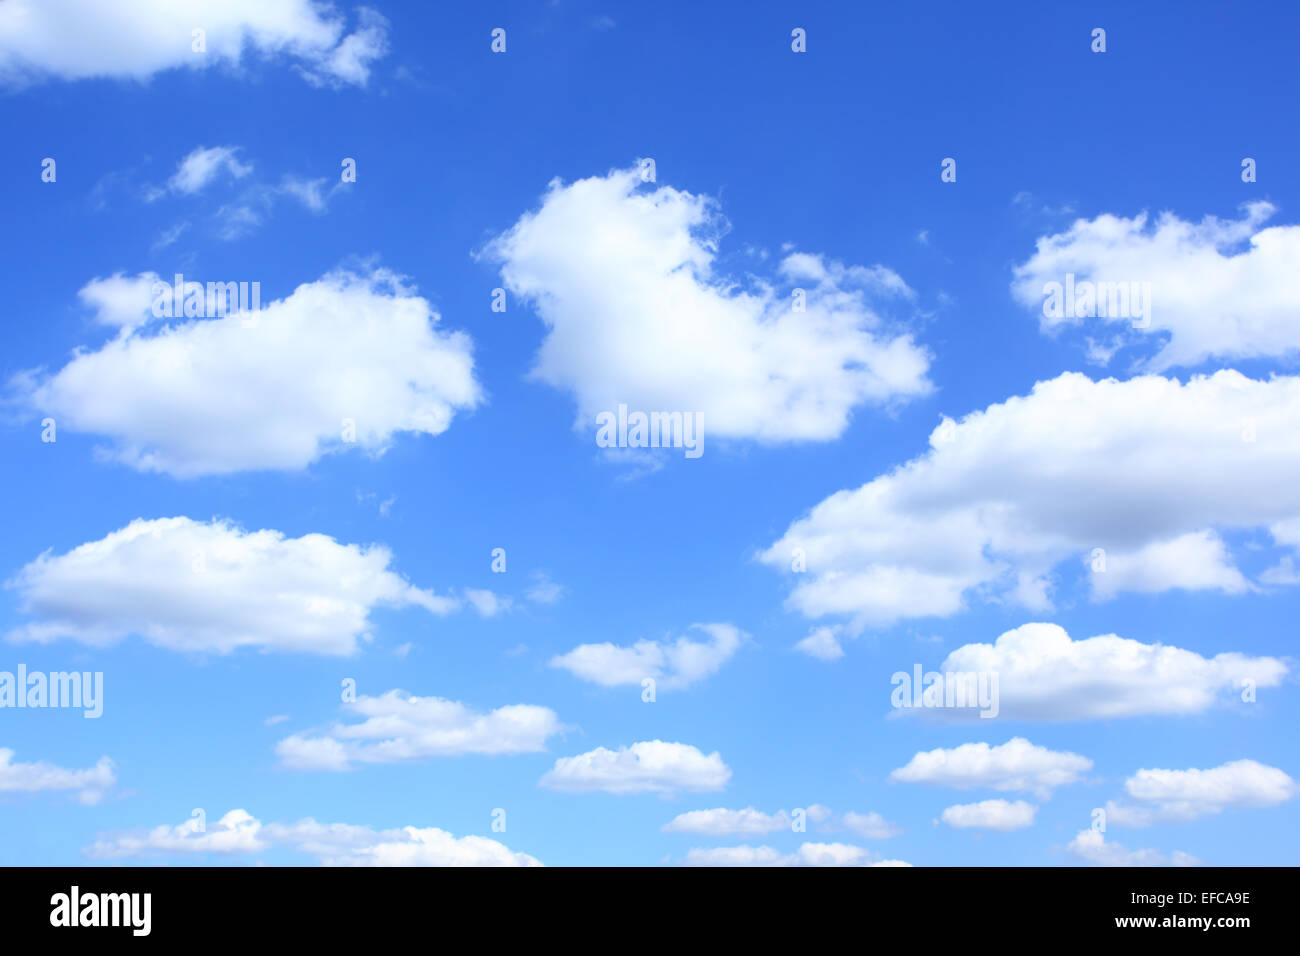 Clouds, may be used as background - Stock Image